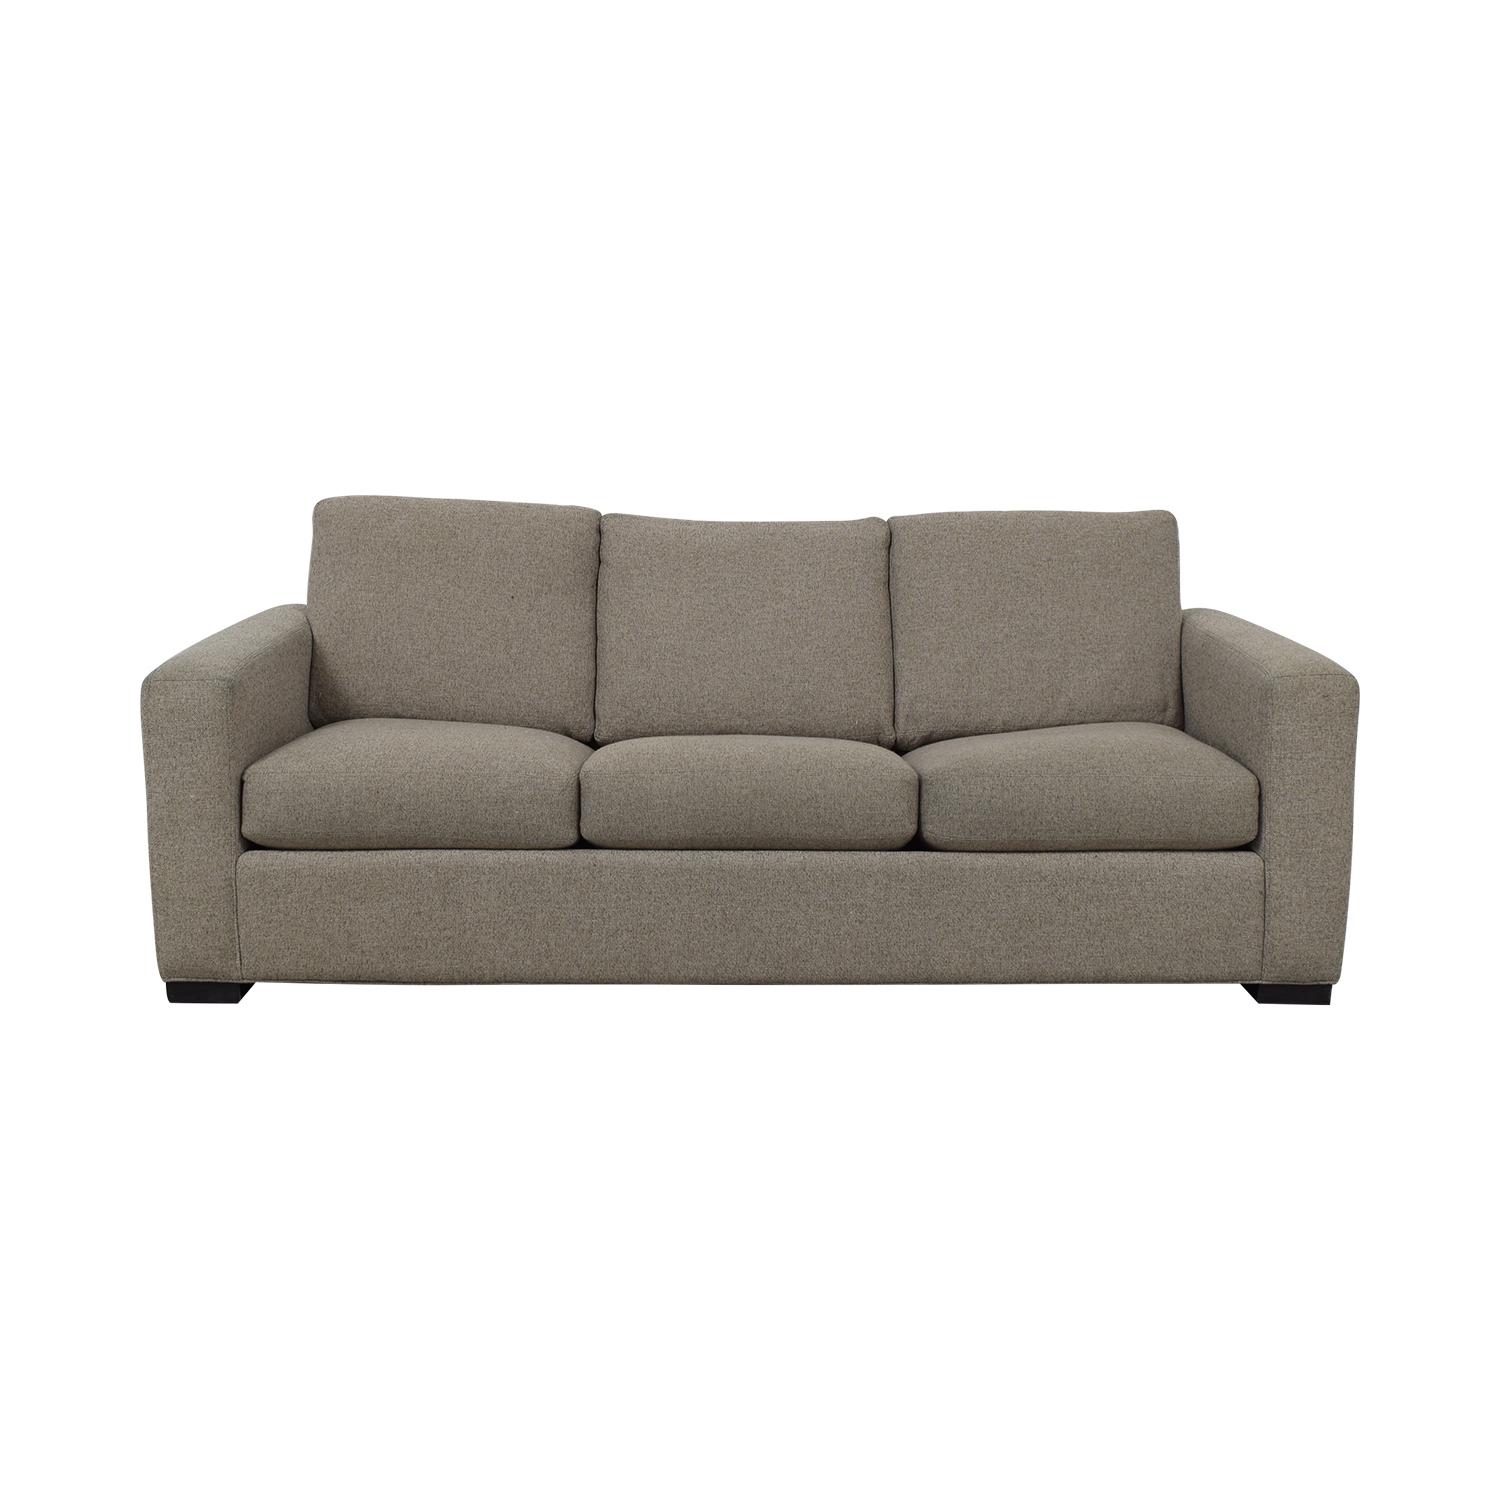 Room & Board Room & Board Metro Queen Sleeper Sofa discount